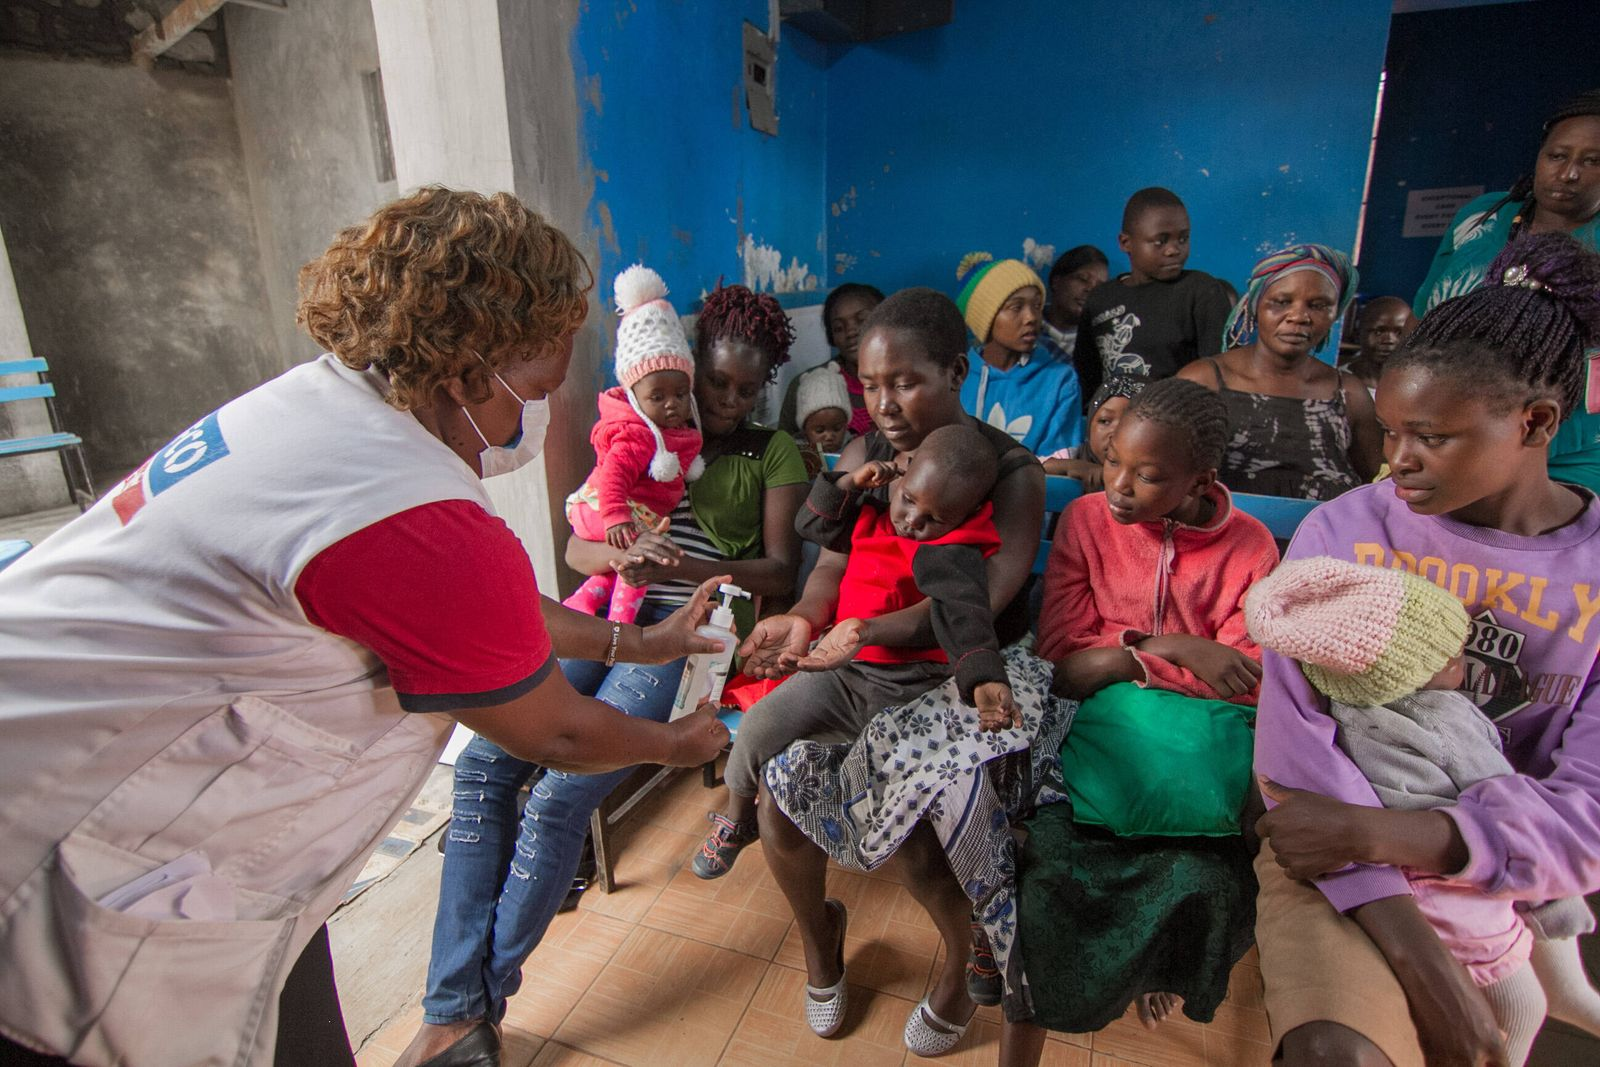 March 20, 2020, Nairobi, Kenya, Africa: A local health officer, Dr Ruth Ndungo performs a public health talk to patients